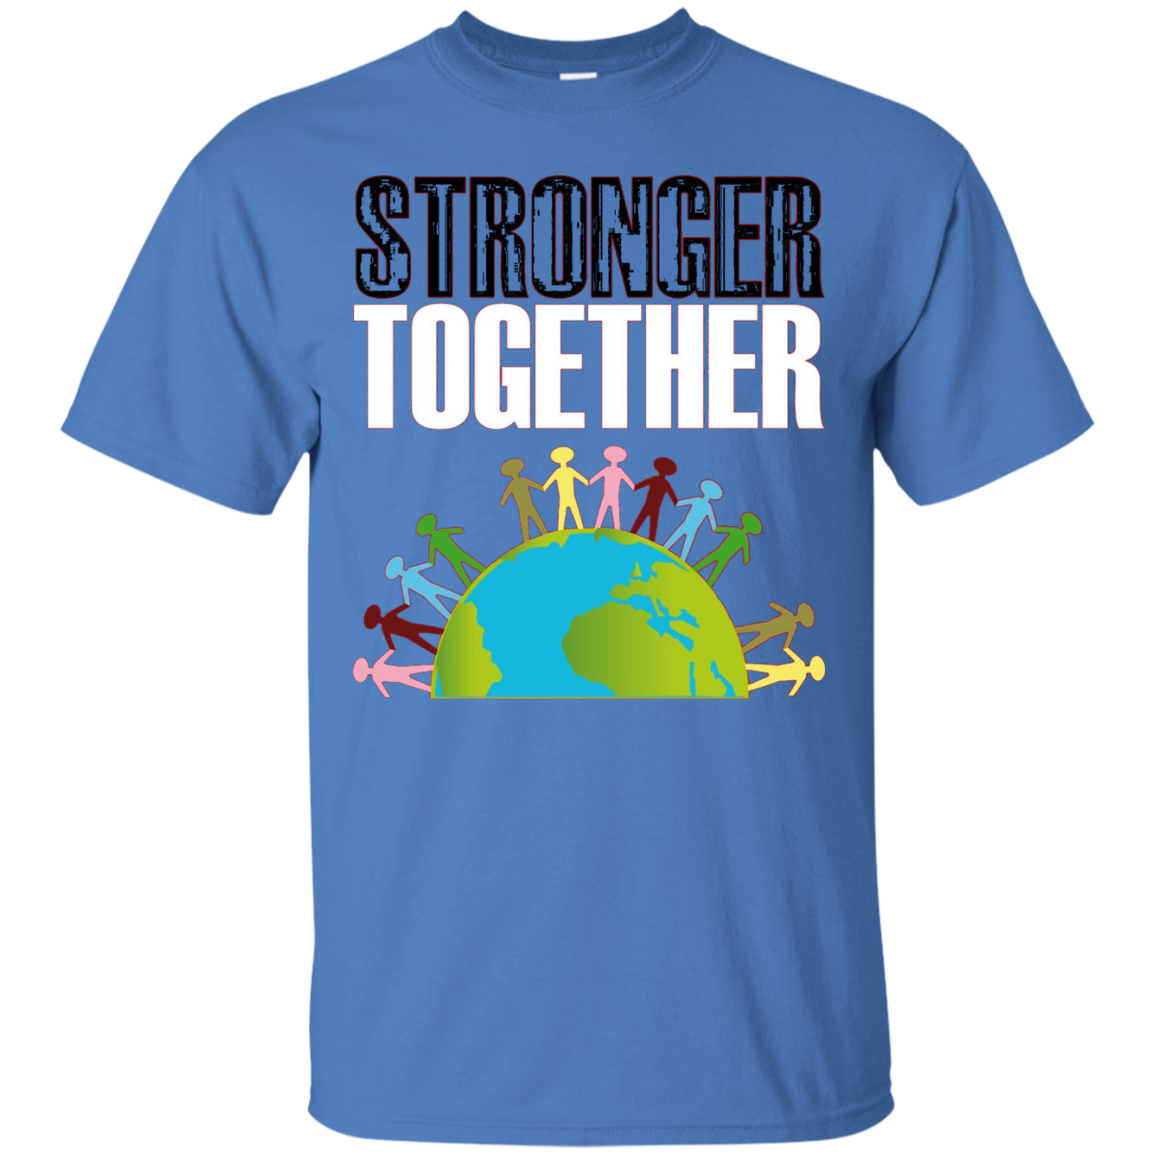 Black and White Togetherness Shirt-Stronger Together T-Shirt